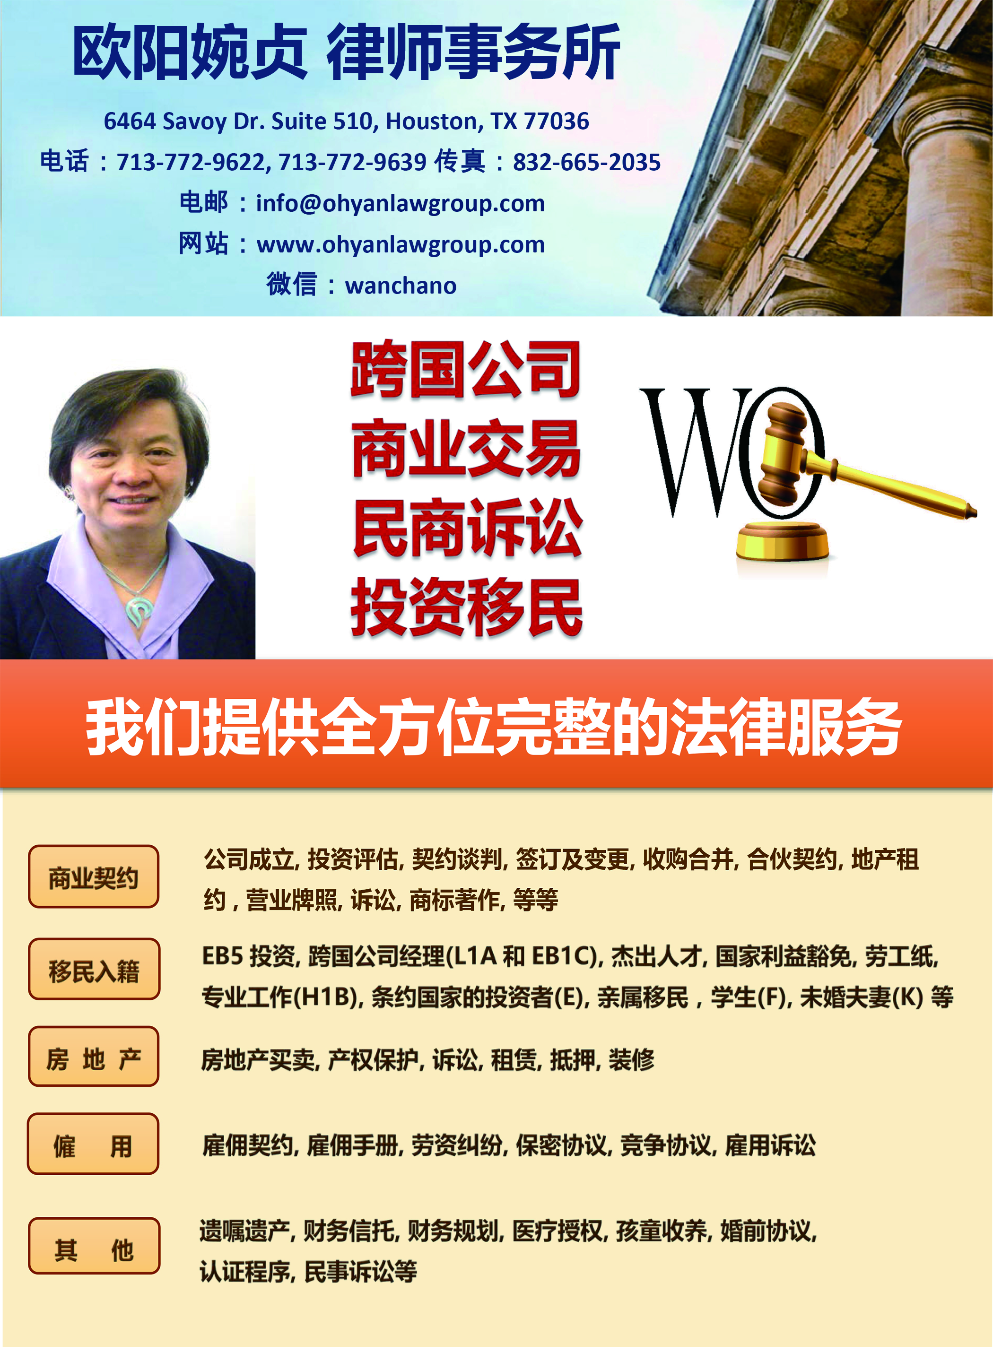 OHYAN Law Office 歐陽婉貞律師